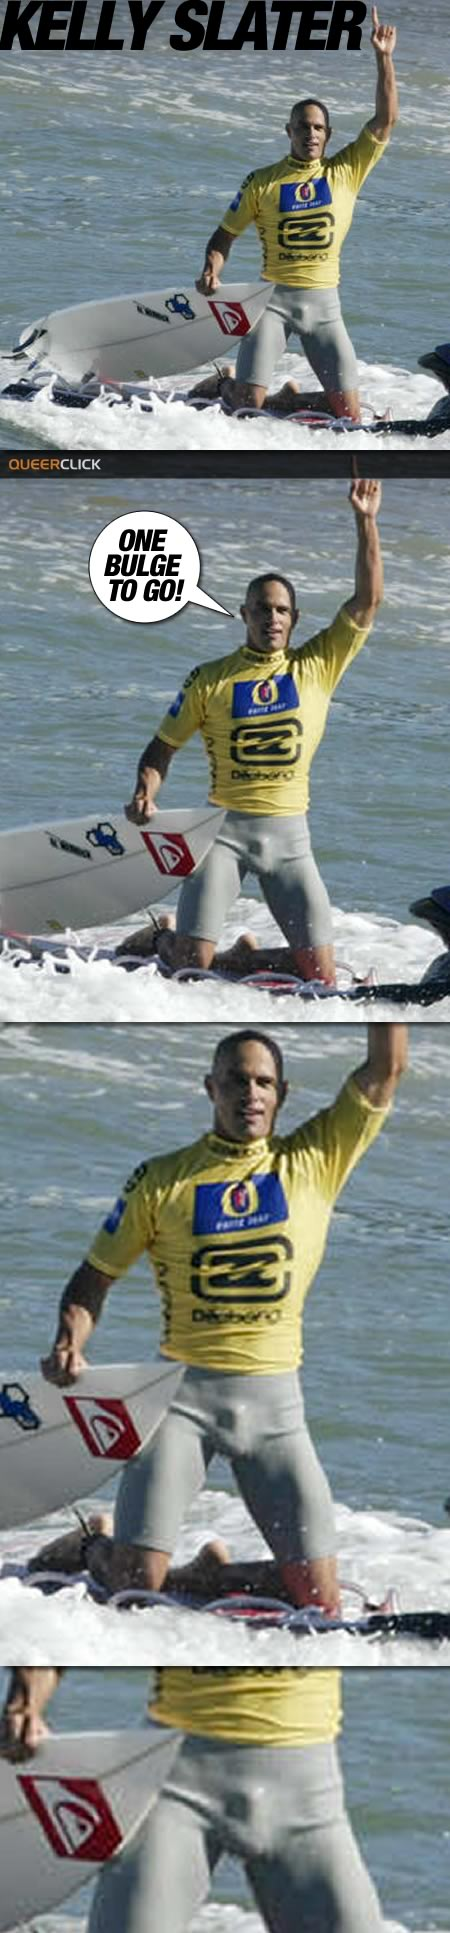 Kelly Slater Bulge